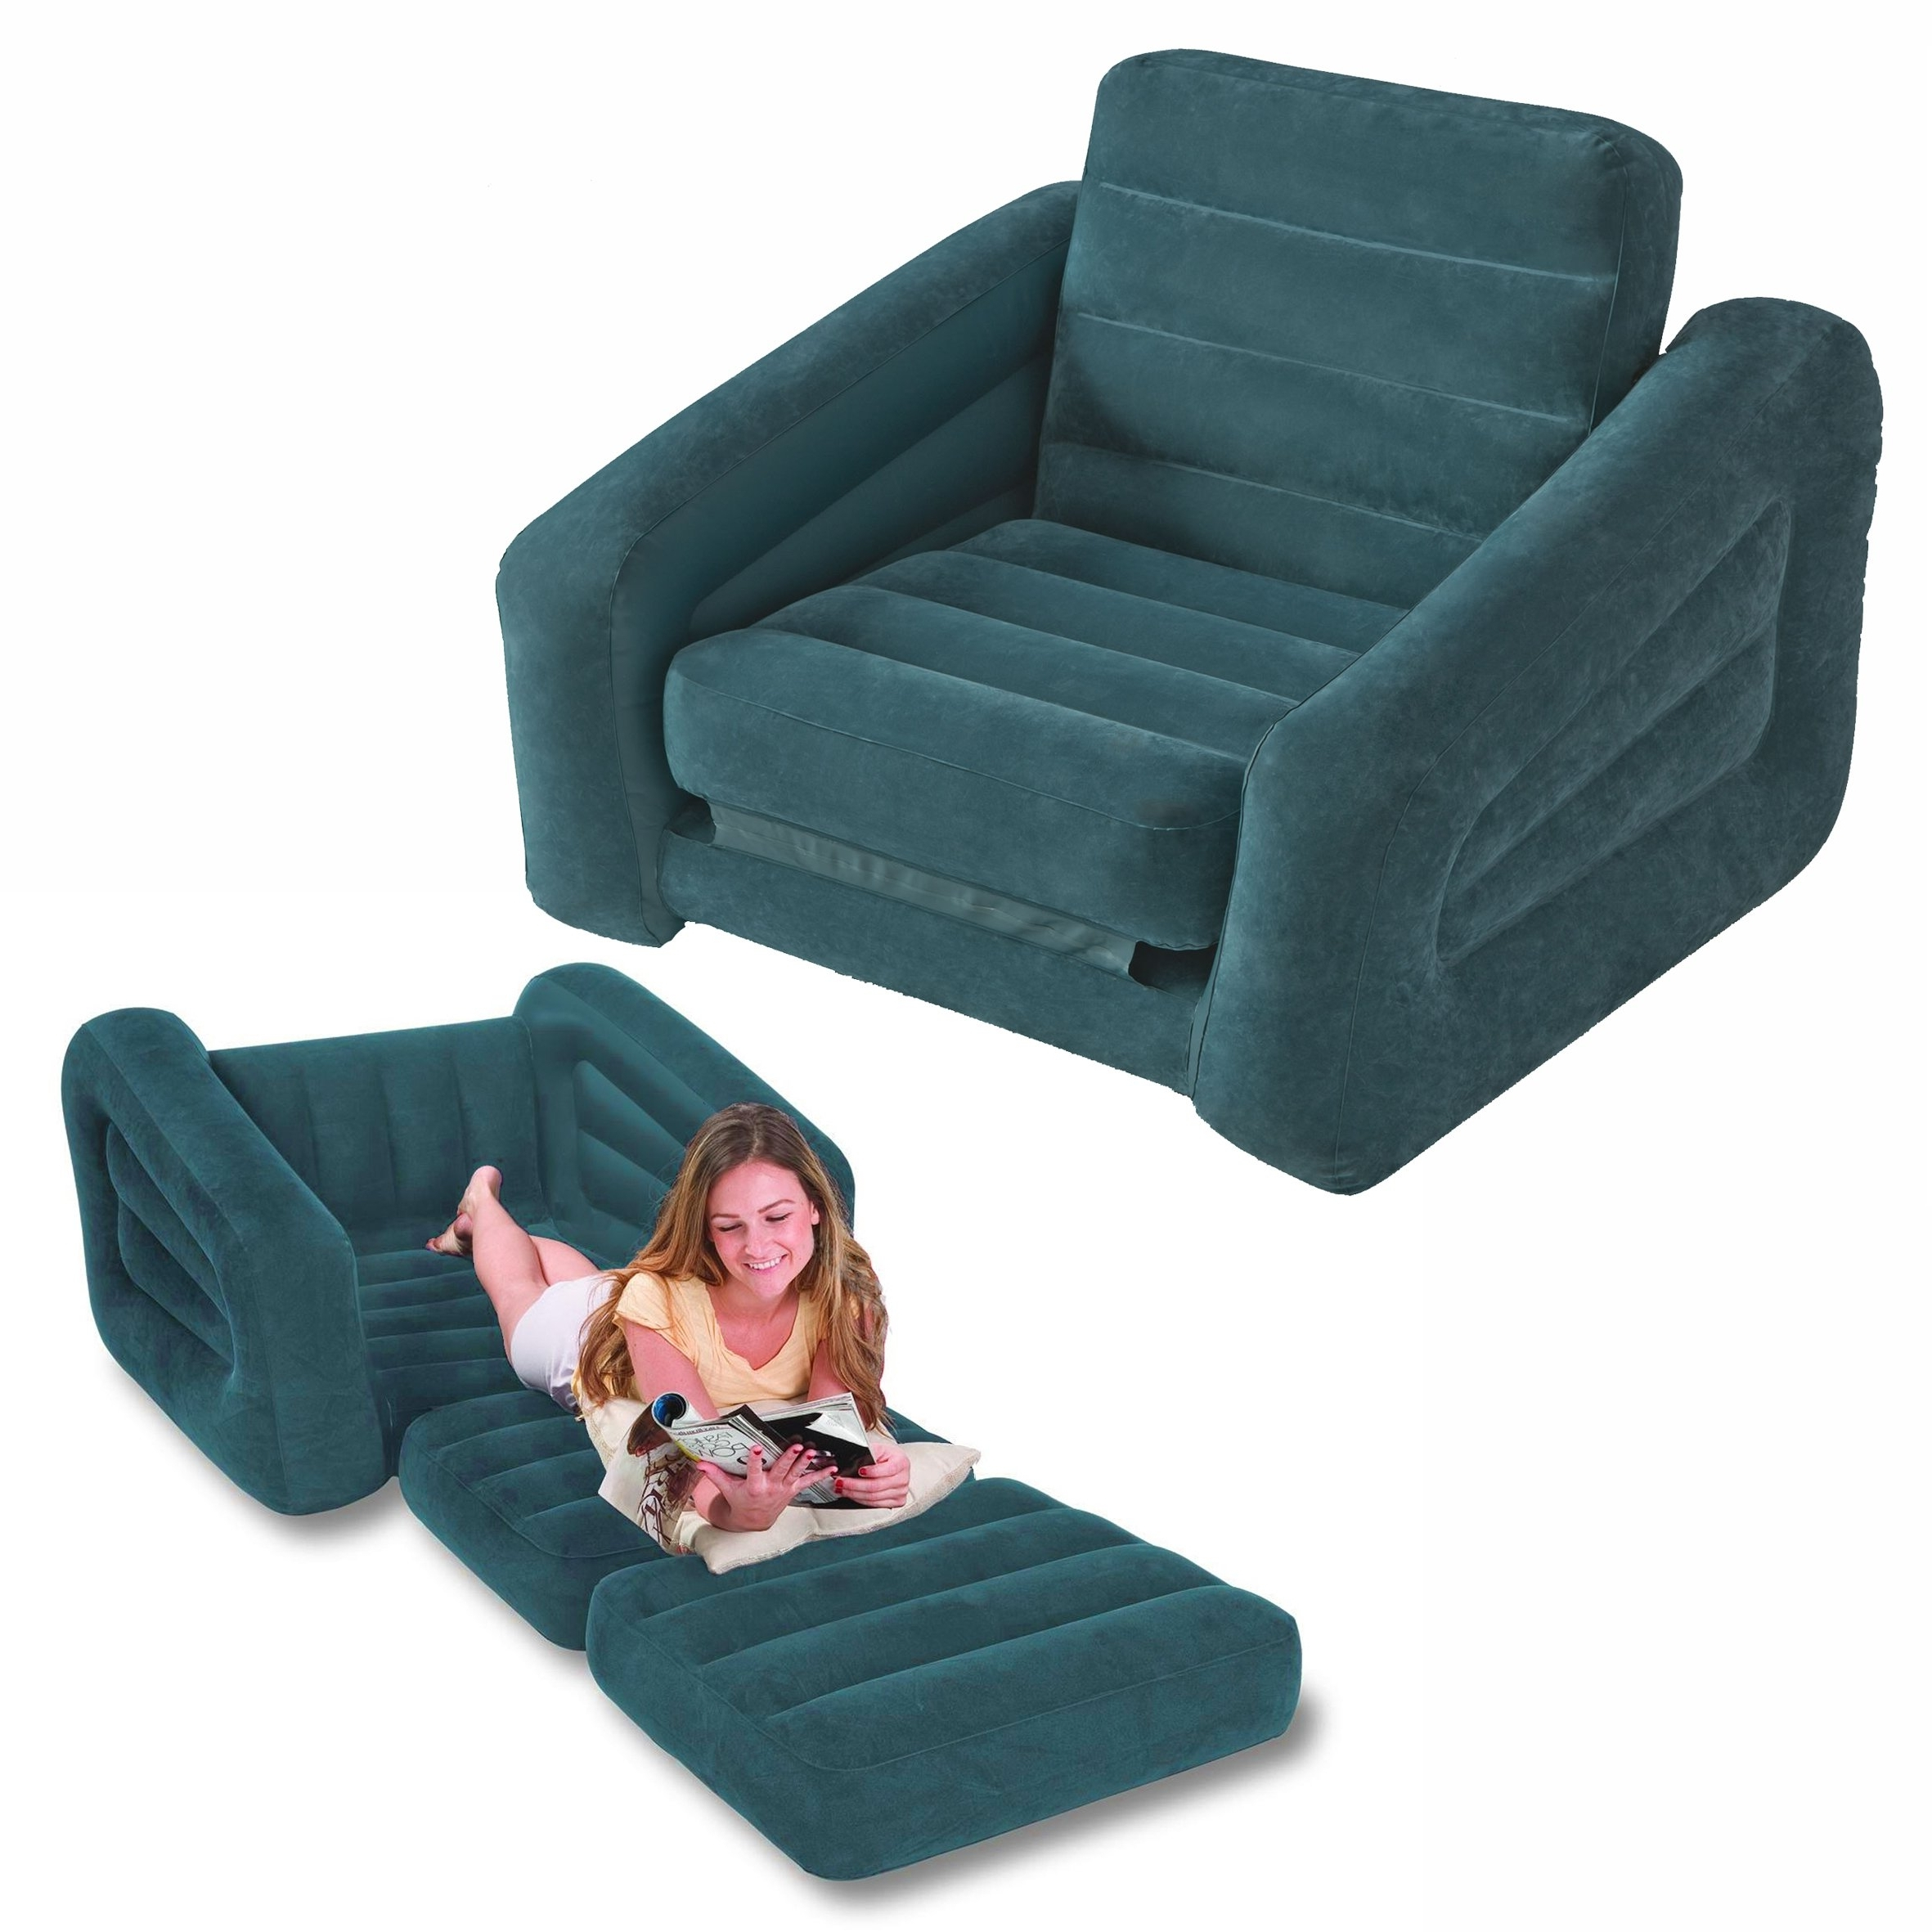 Intex One Person Inflatable Pull Out Chair Bed Sofa Bed #68565 Pertaining To Current Inflatable Sofas And Chairs (View 4 of 15)